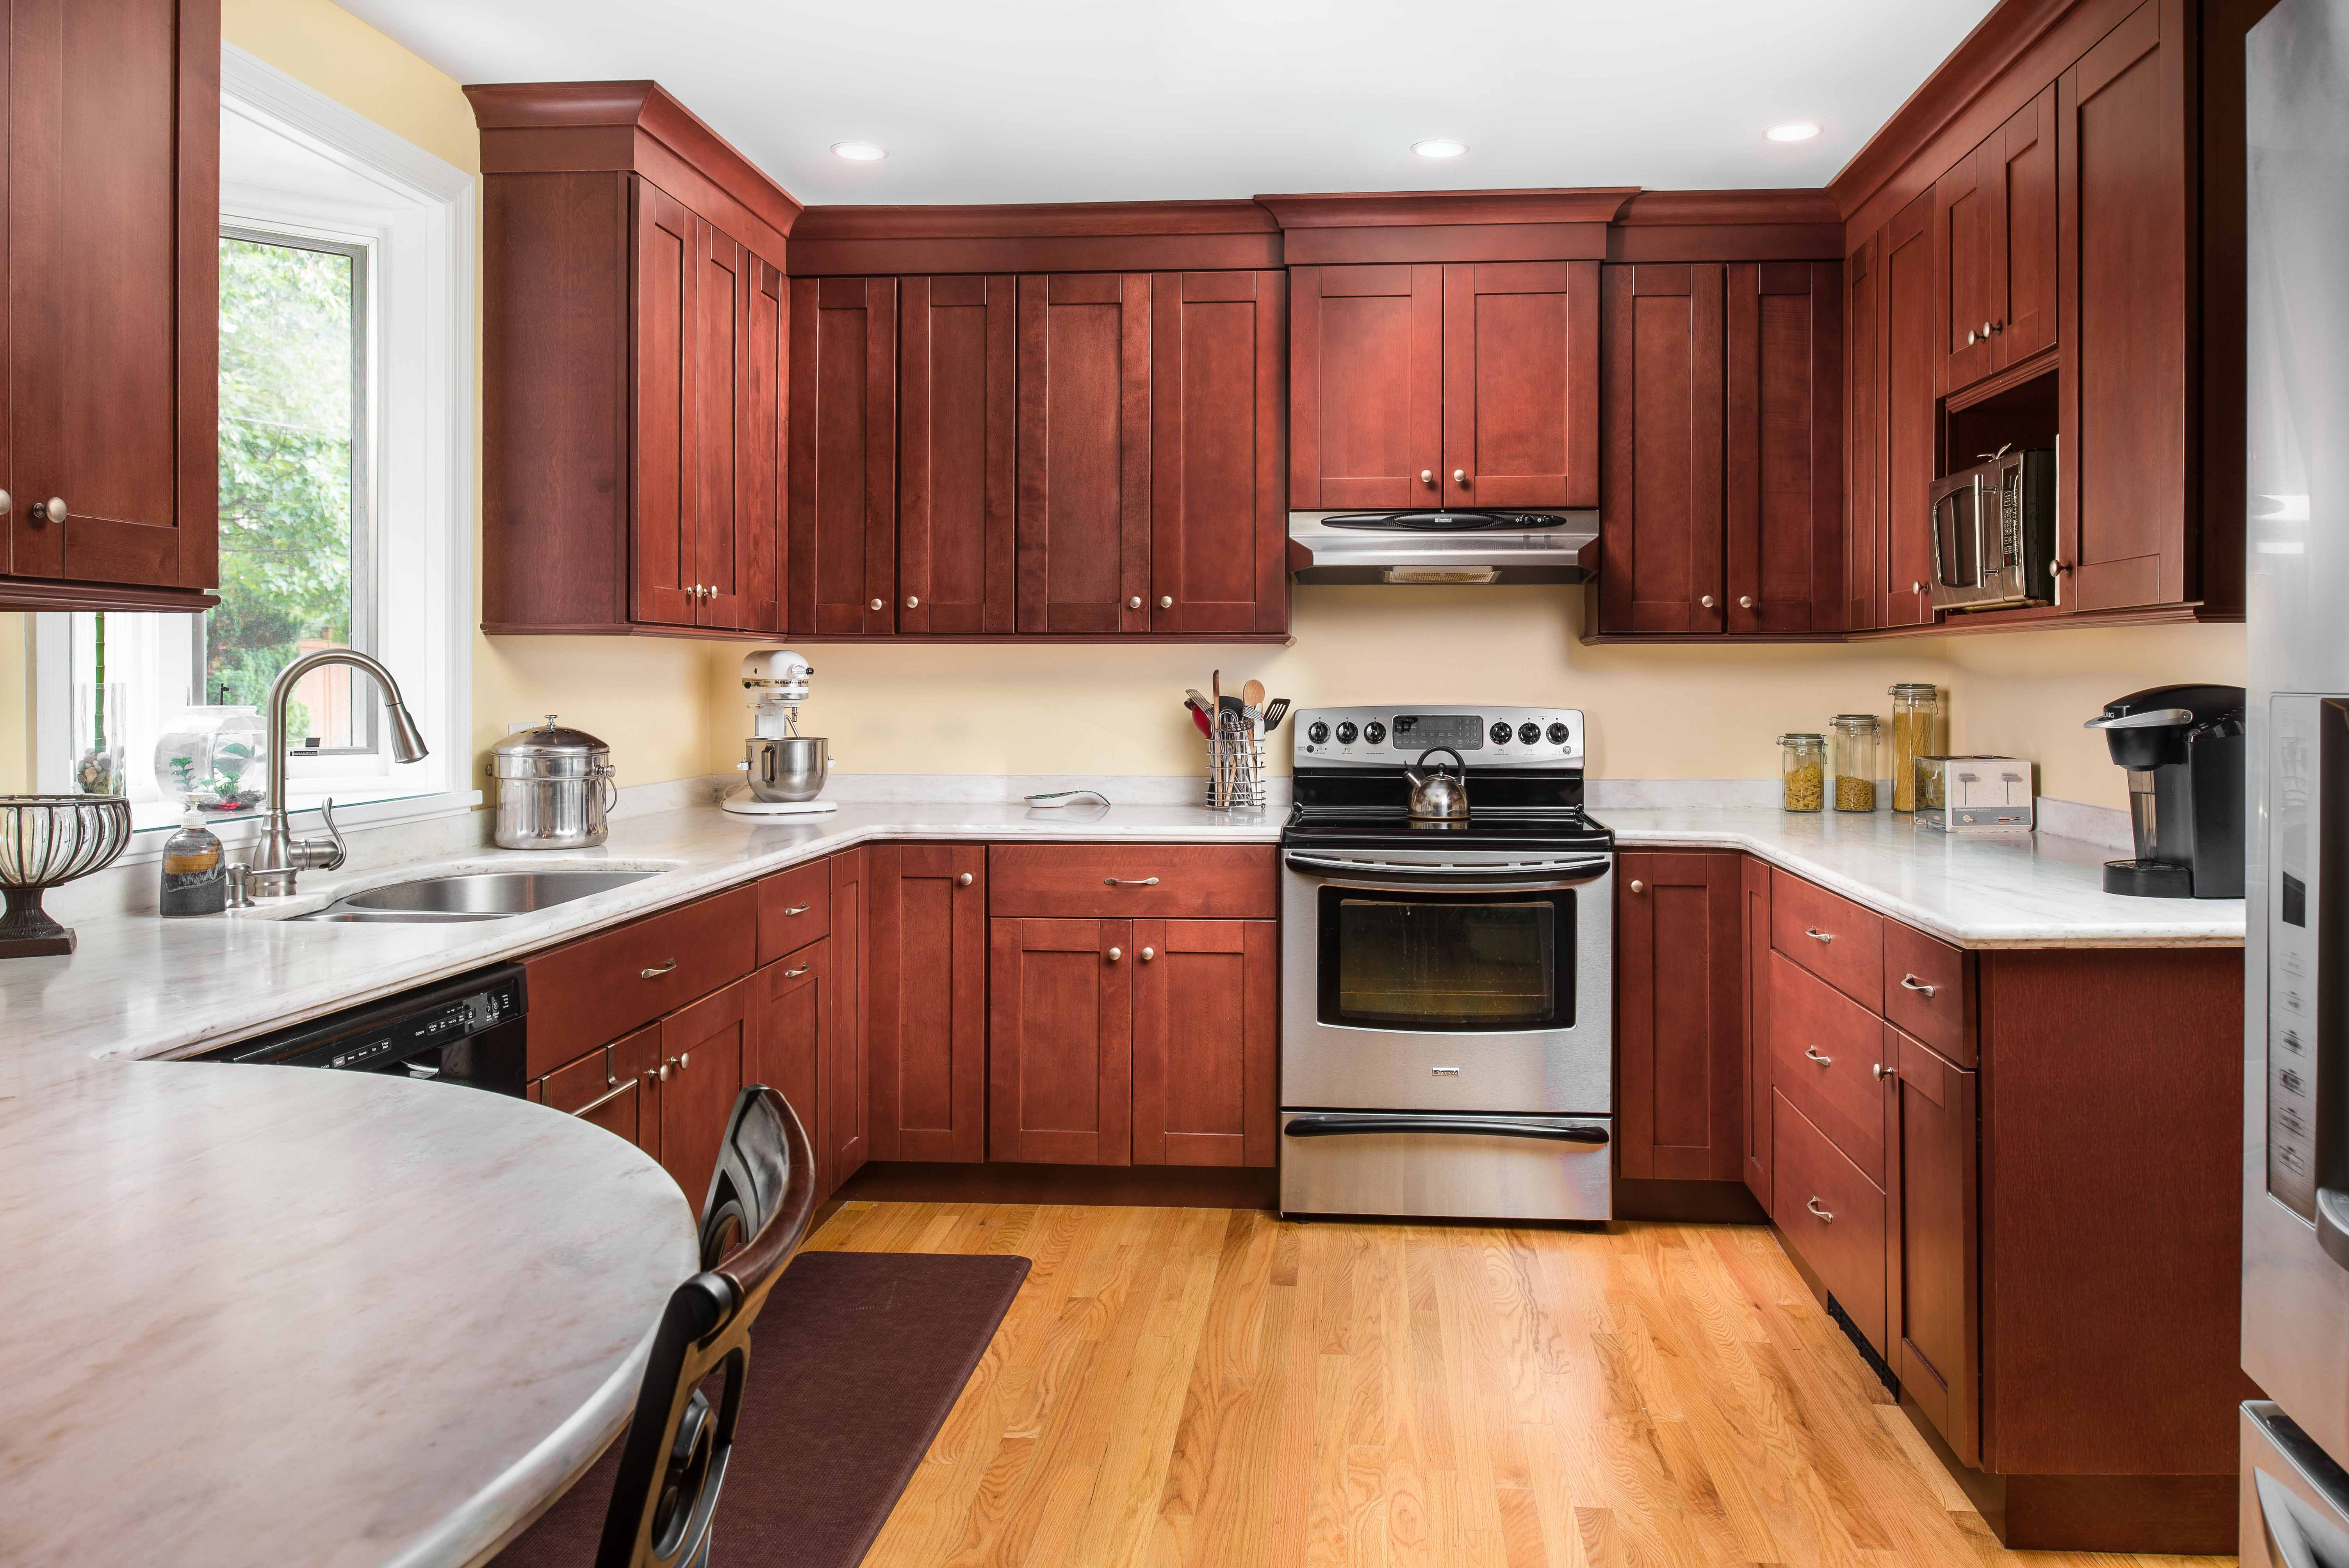 Shaker Doors Kitchen Why Shaker Style Kitchen Cabinets Never Go Out Of Style